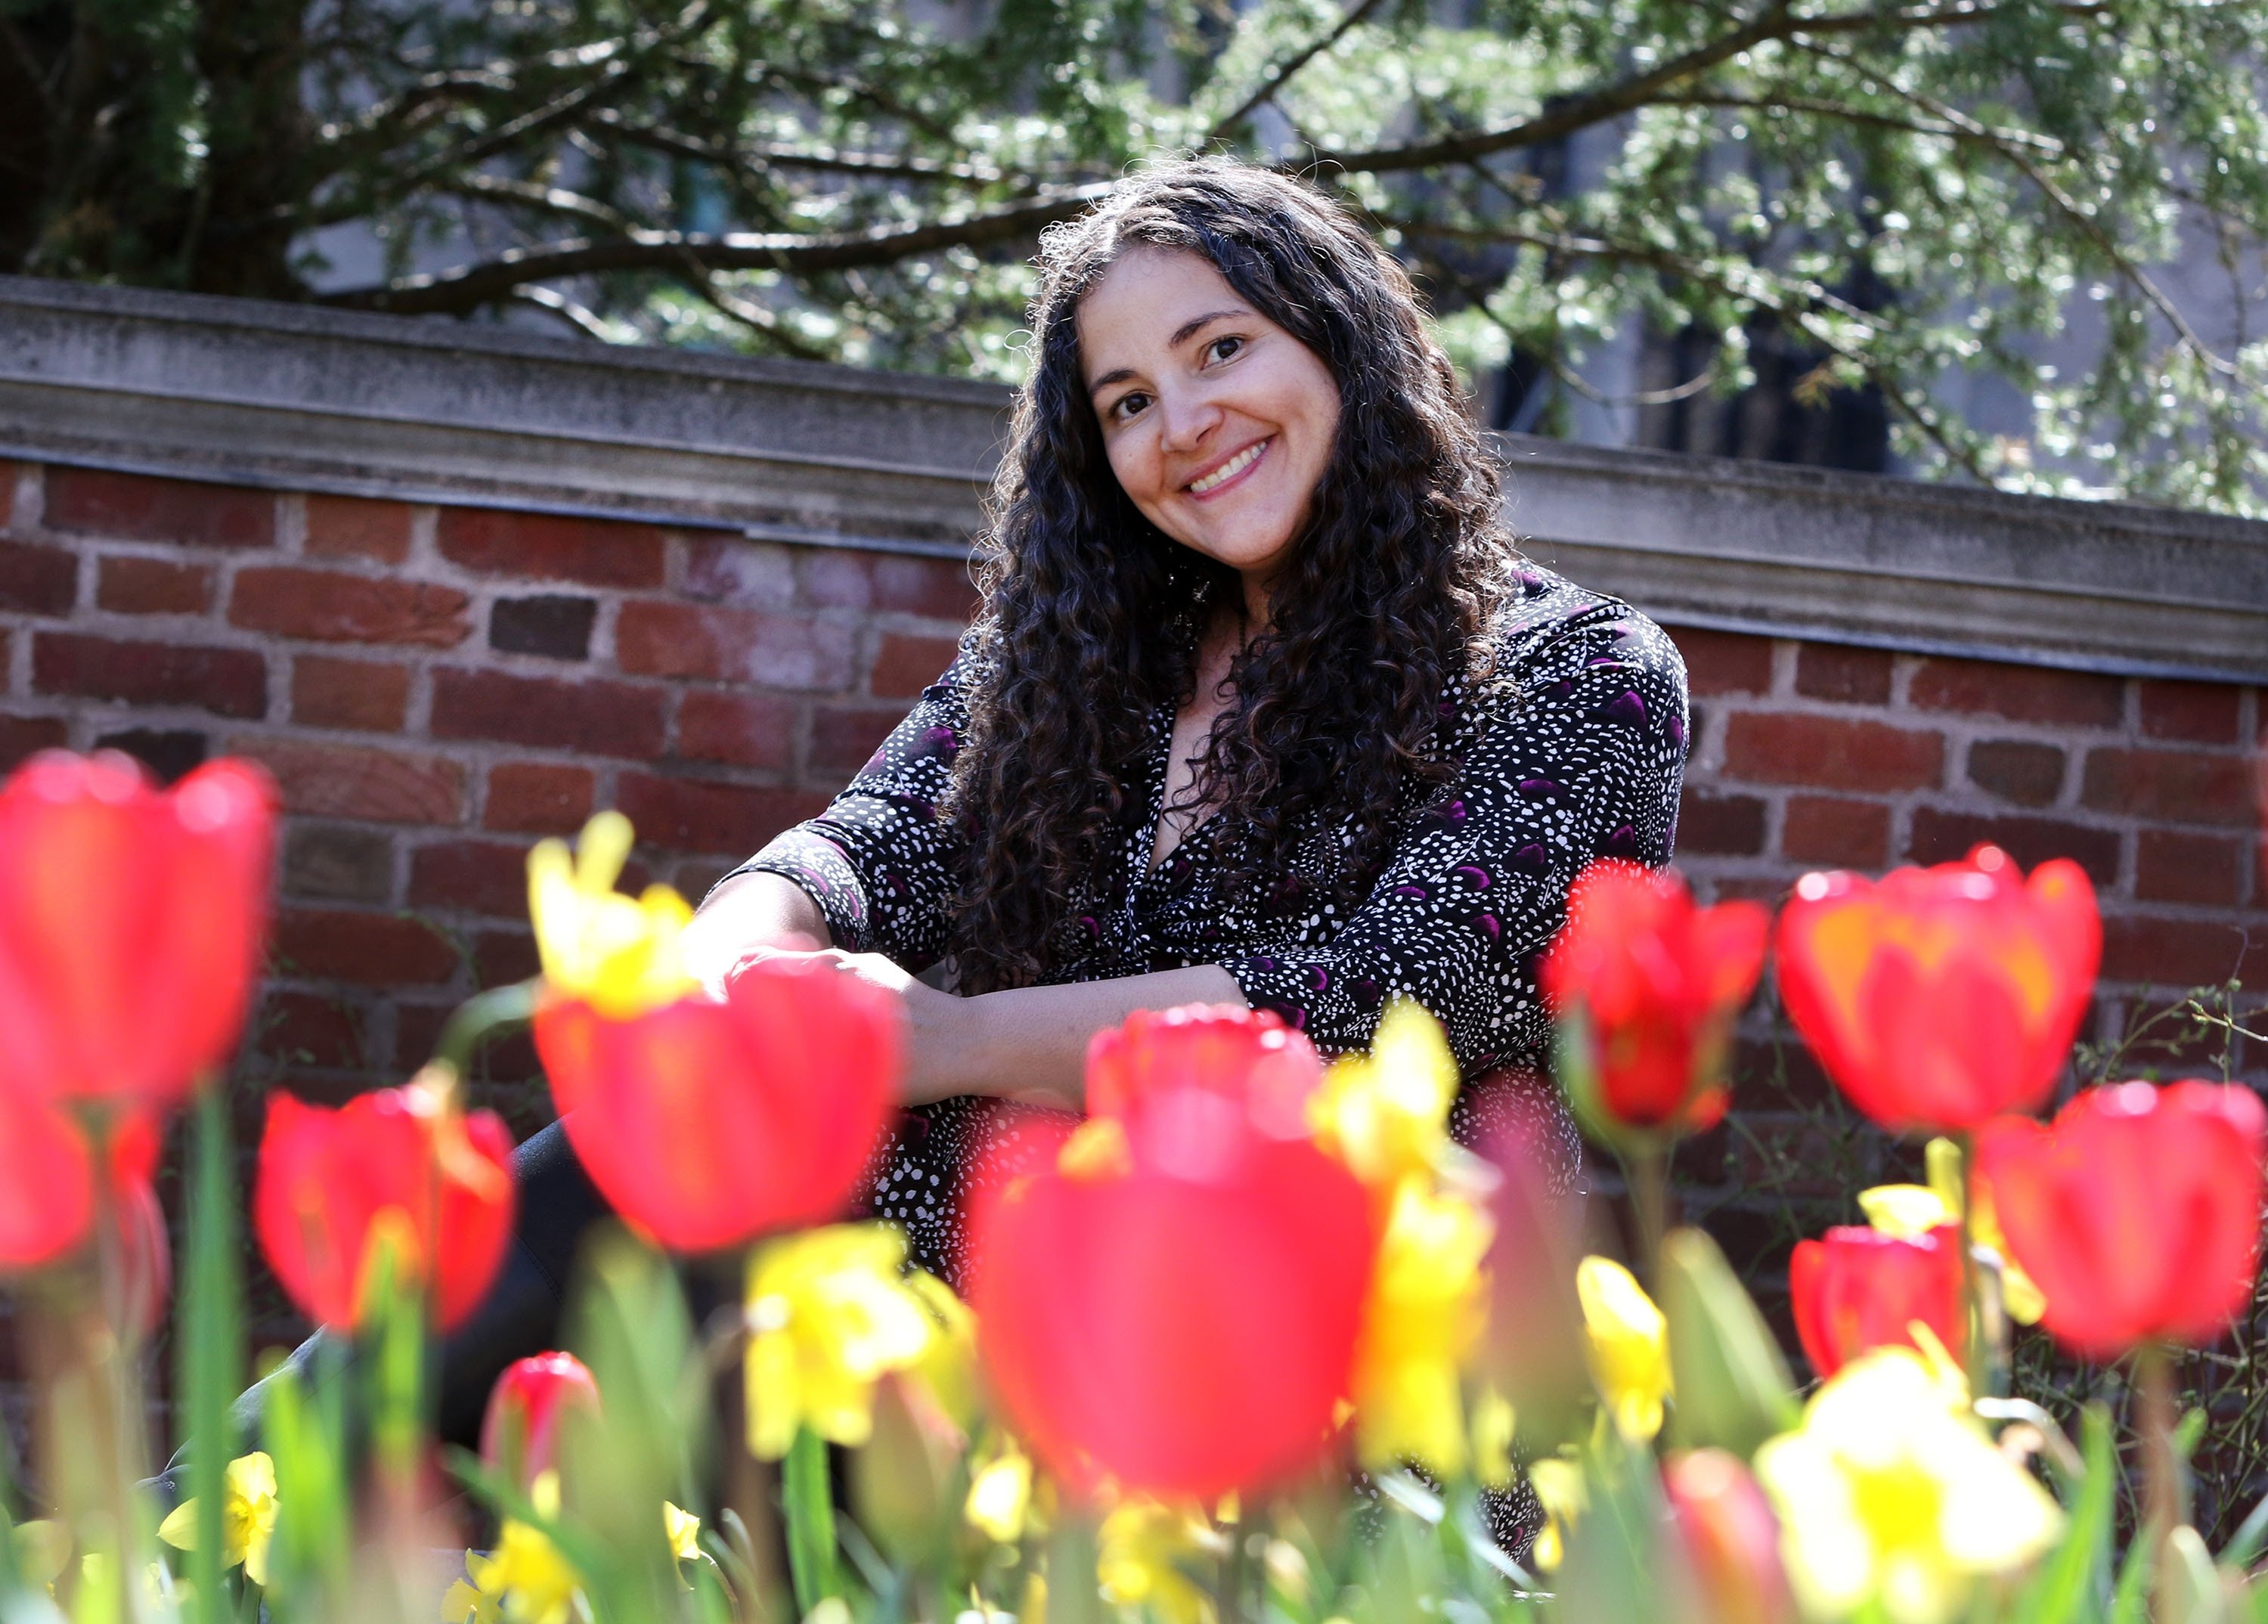 NEW HAVEN, CT - APRIL 26: Psychology Professor Dr. Laurie Santos, whose one-time-only class 'Psychology and the Good Life' is the most popular course ever offered at Yale University in New Haven, CT and was held on April 26, 2018. (Photo by Stan Godlewski for The Washington Post via Getty Images)